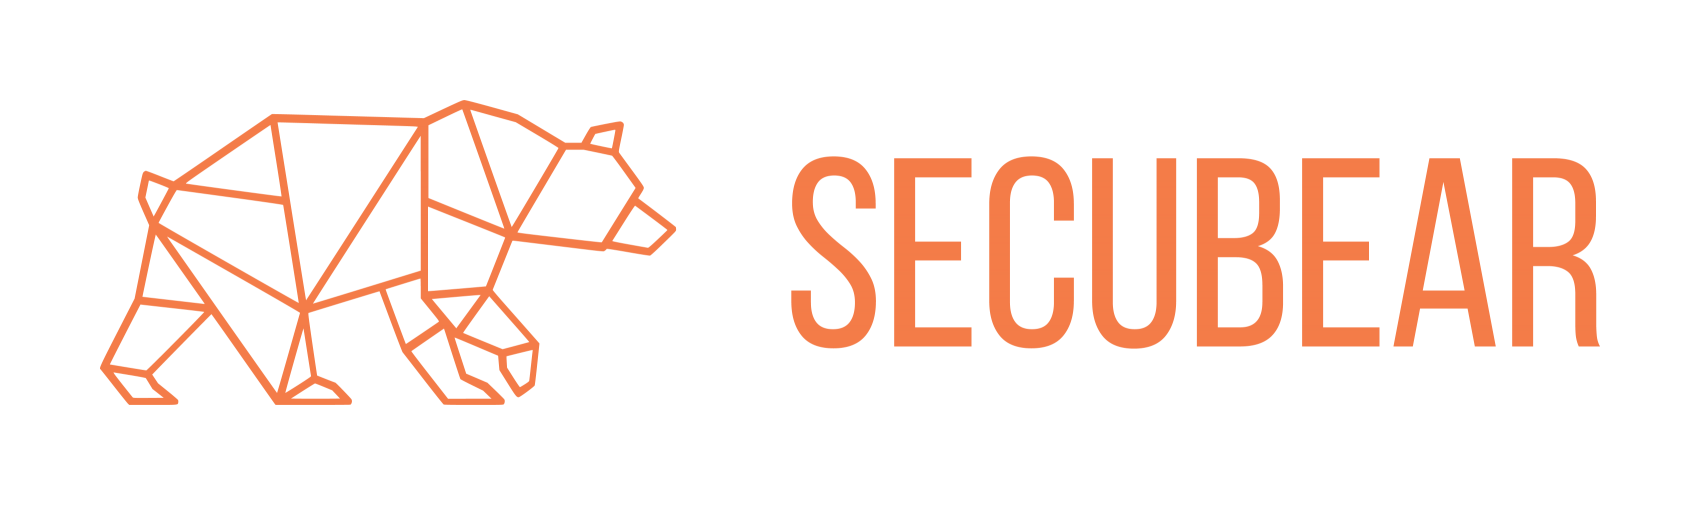 secubear data securtiy advisors